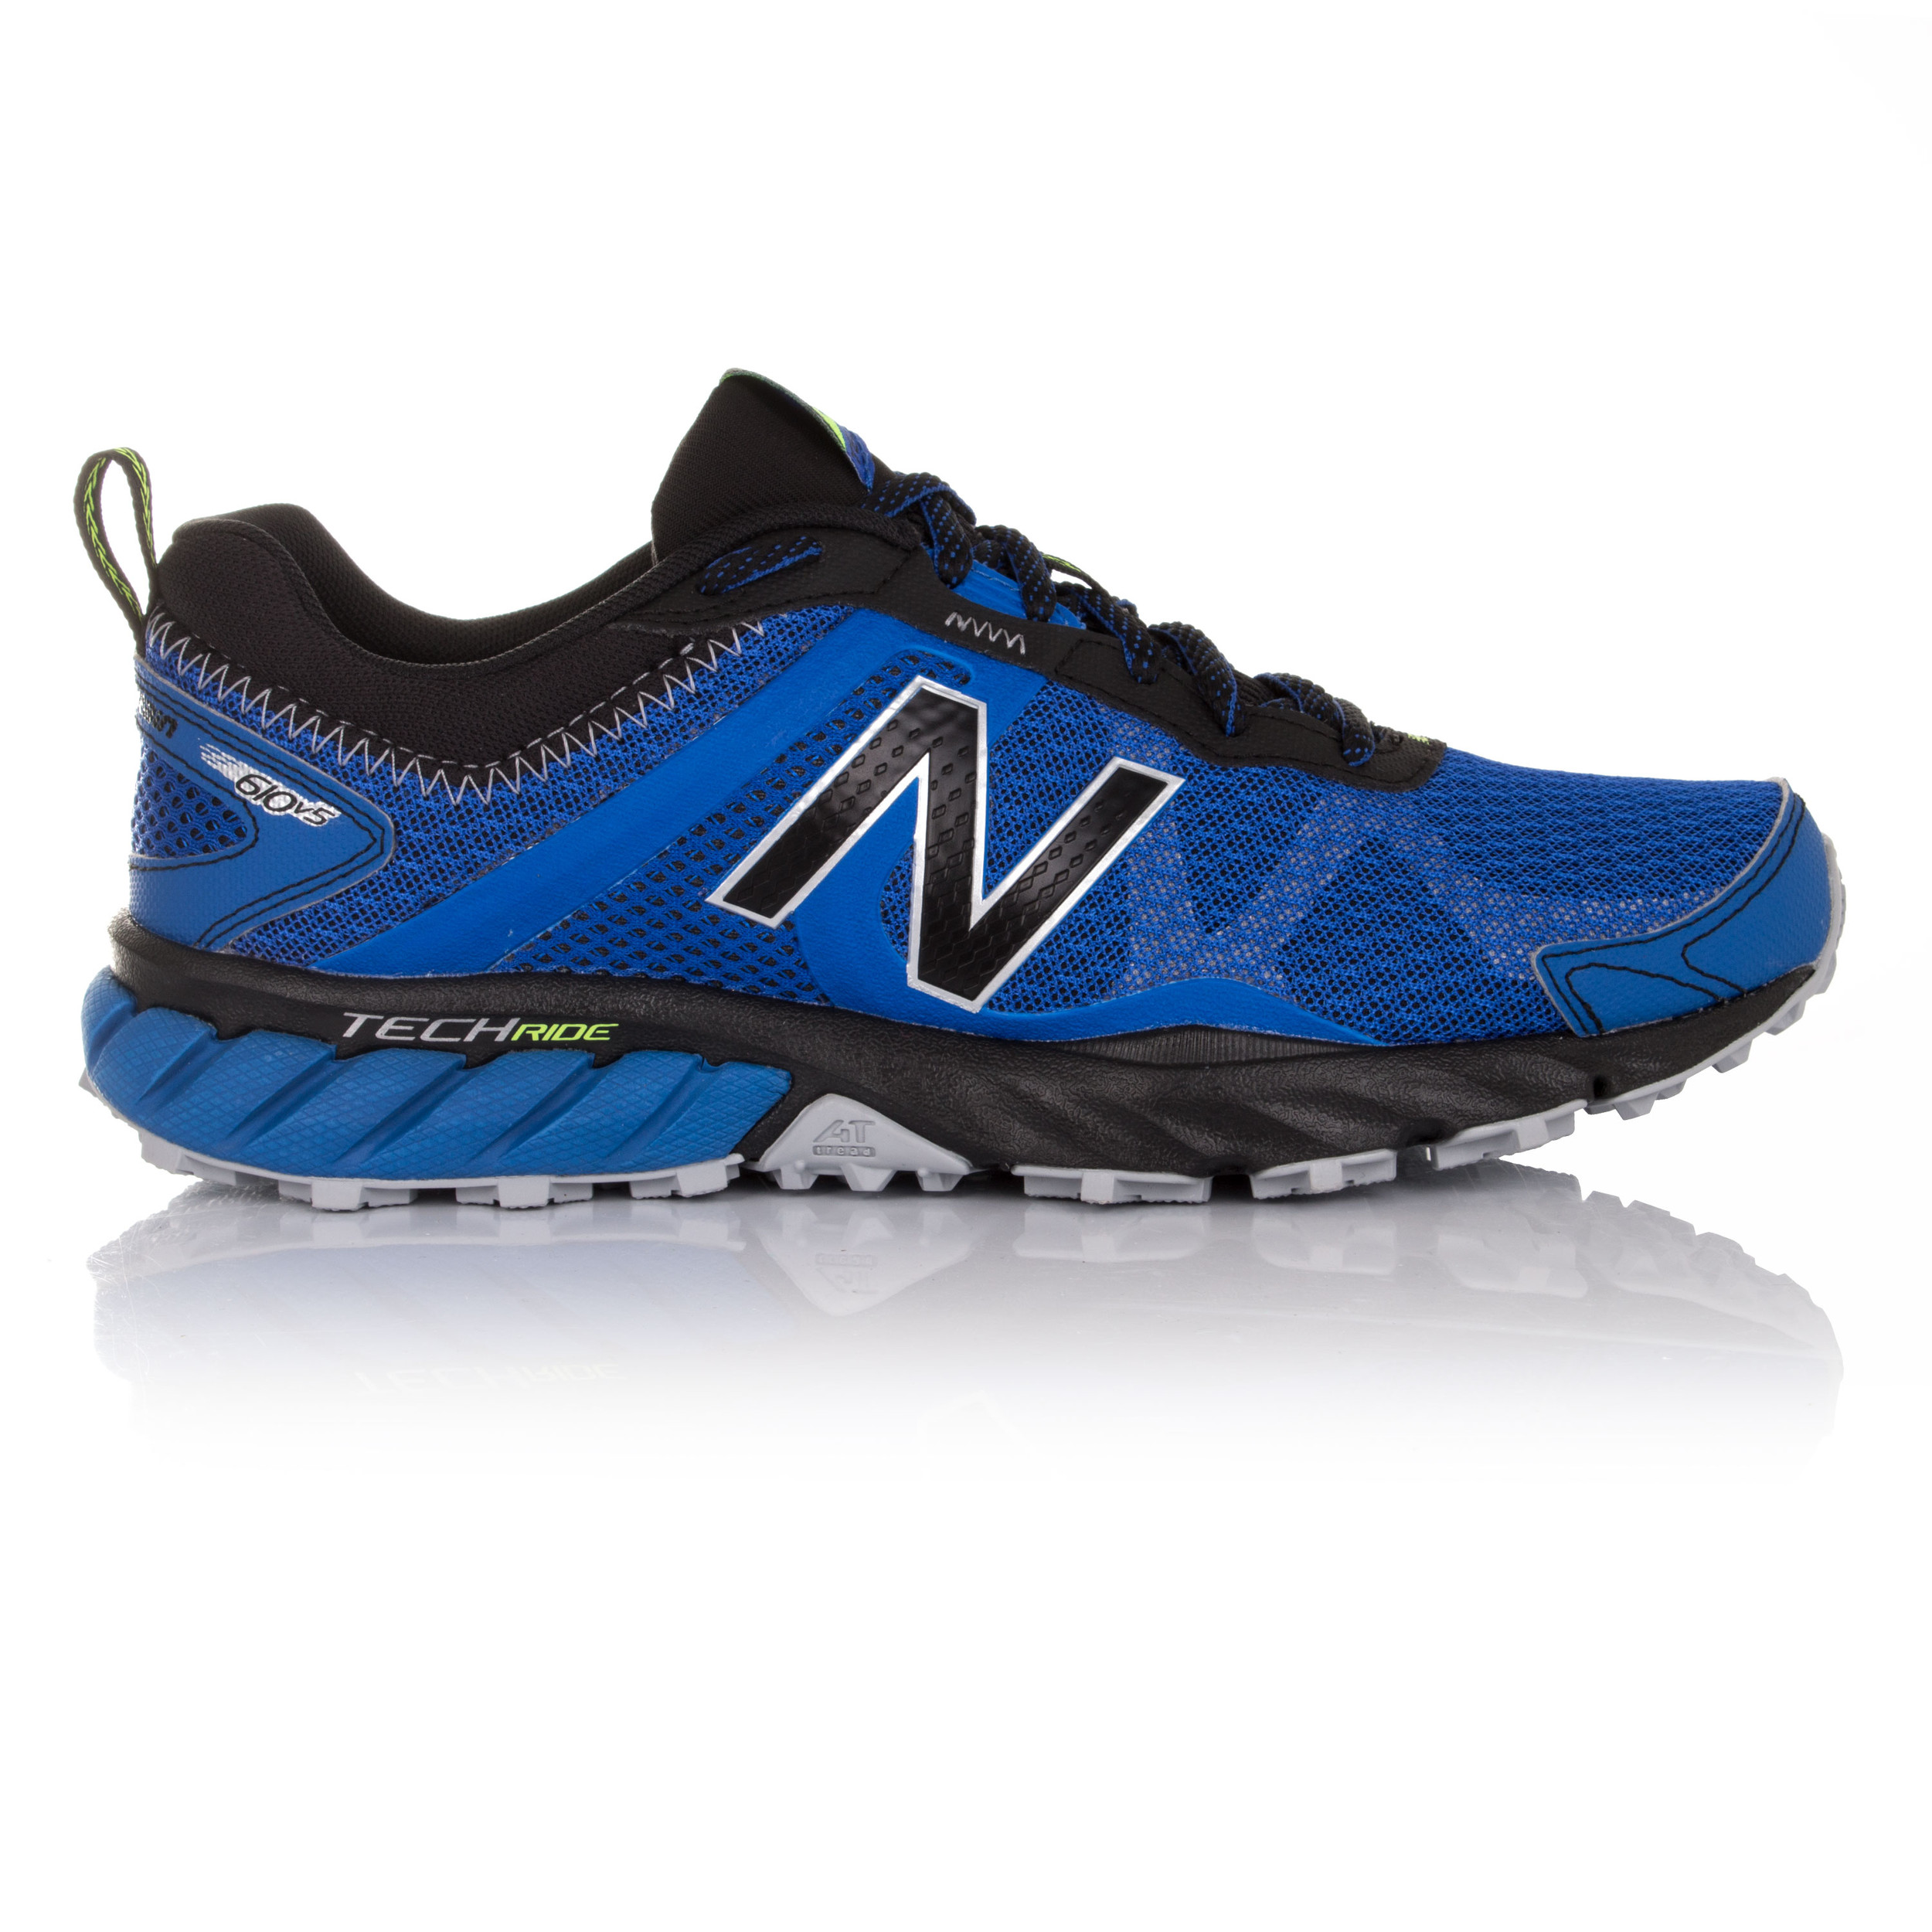 Ebay Us Mens New Balance Running Shoes